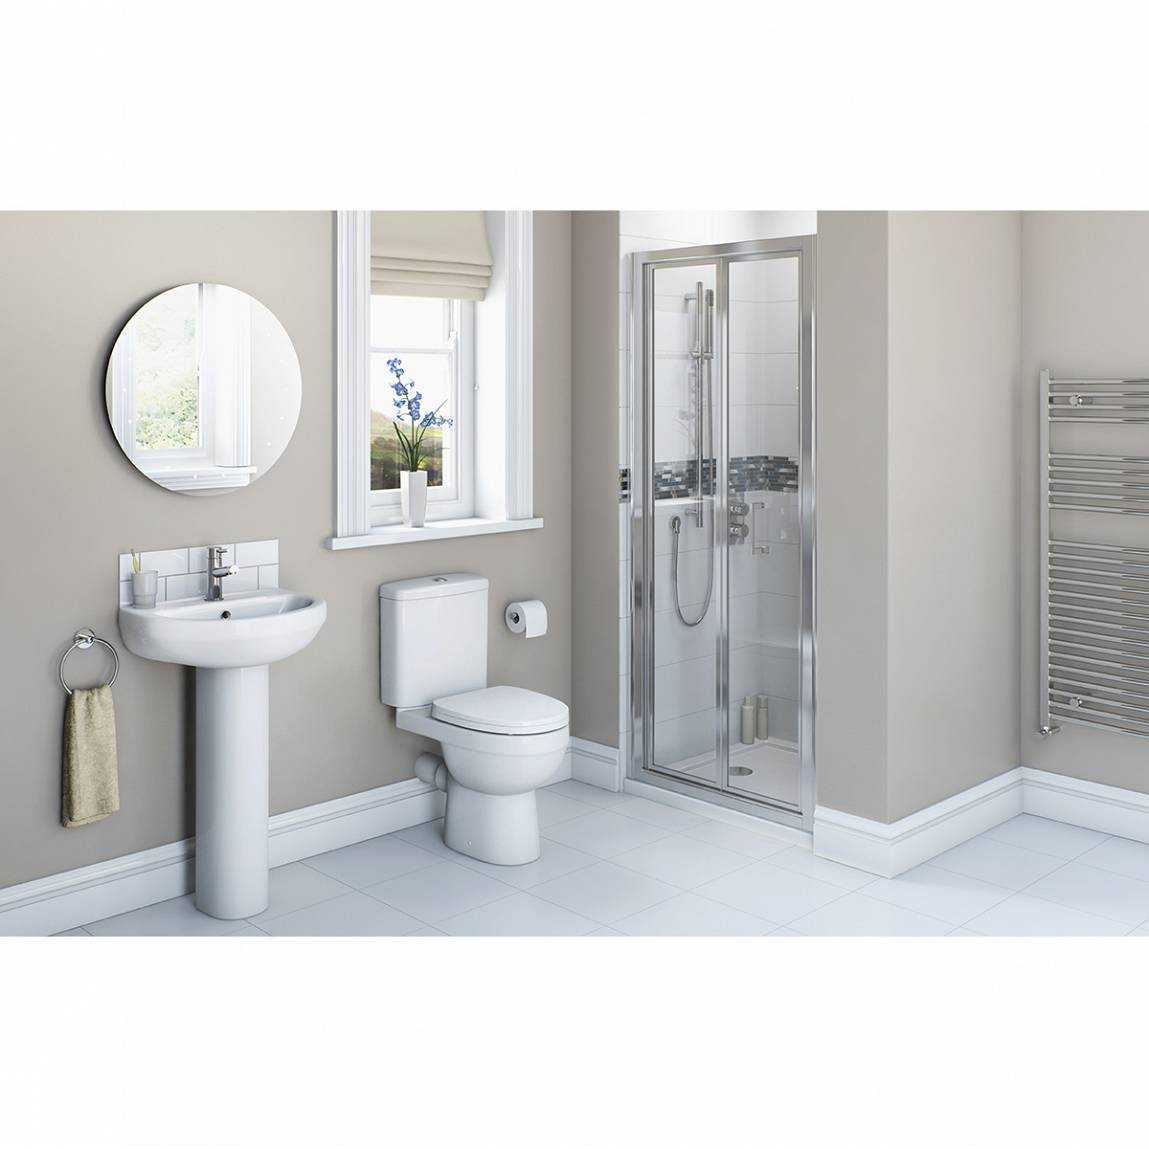 Image of Energy Bathroom set with Bifold Shower Door 800